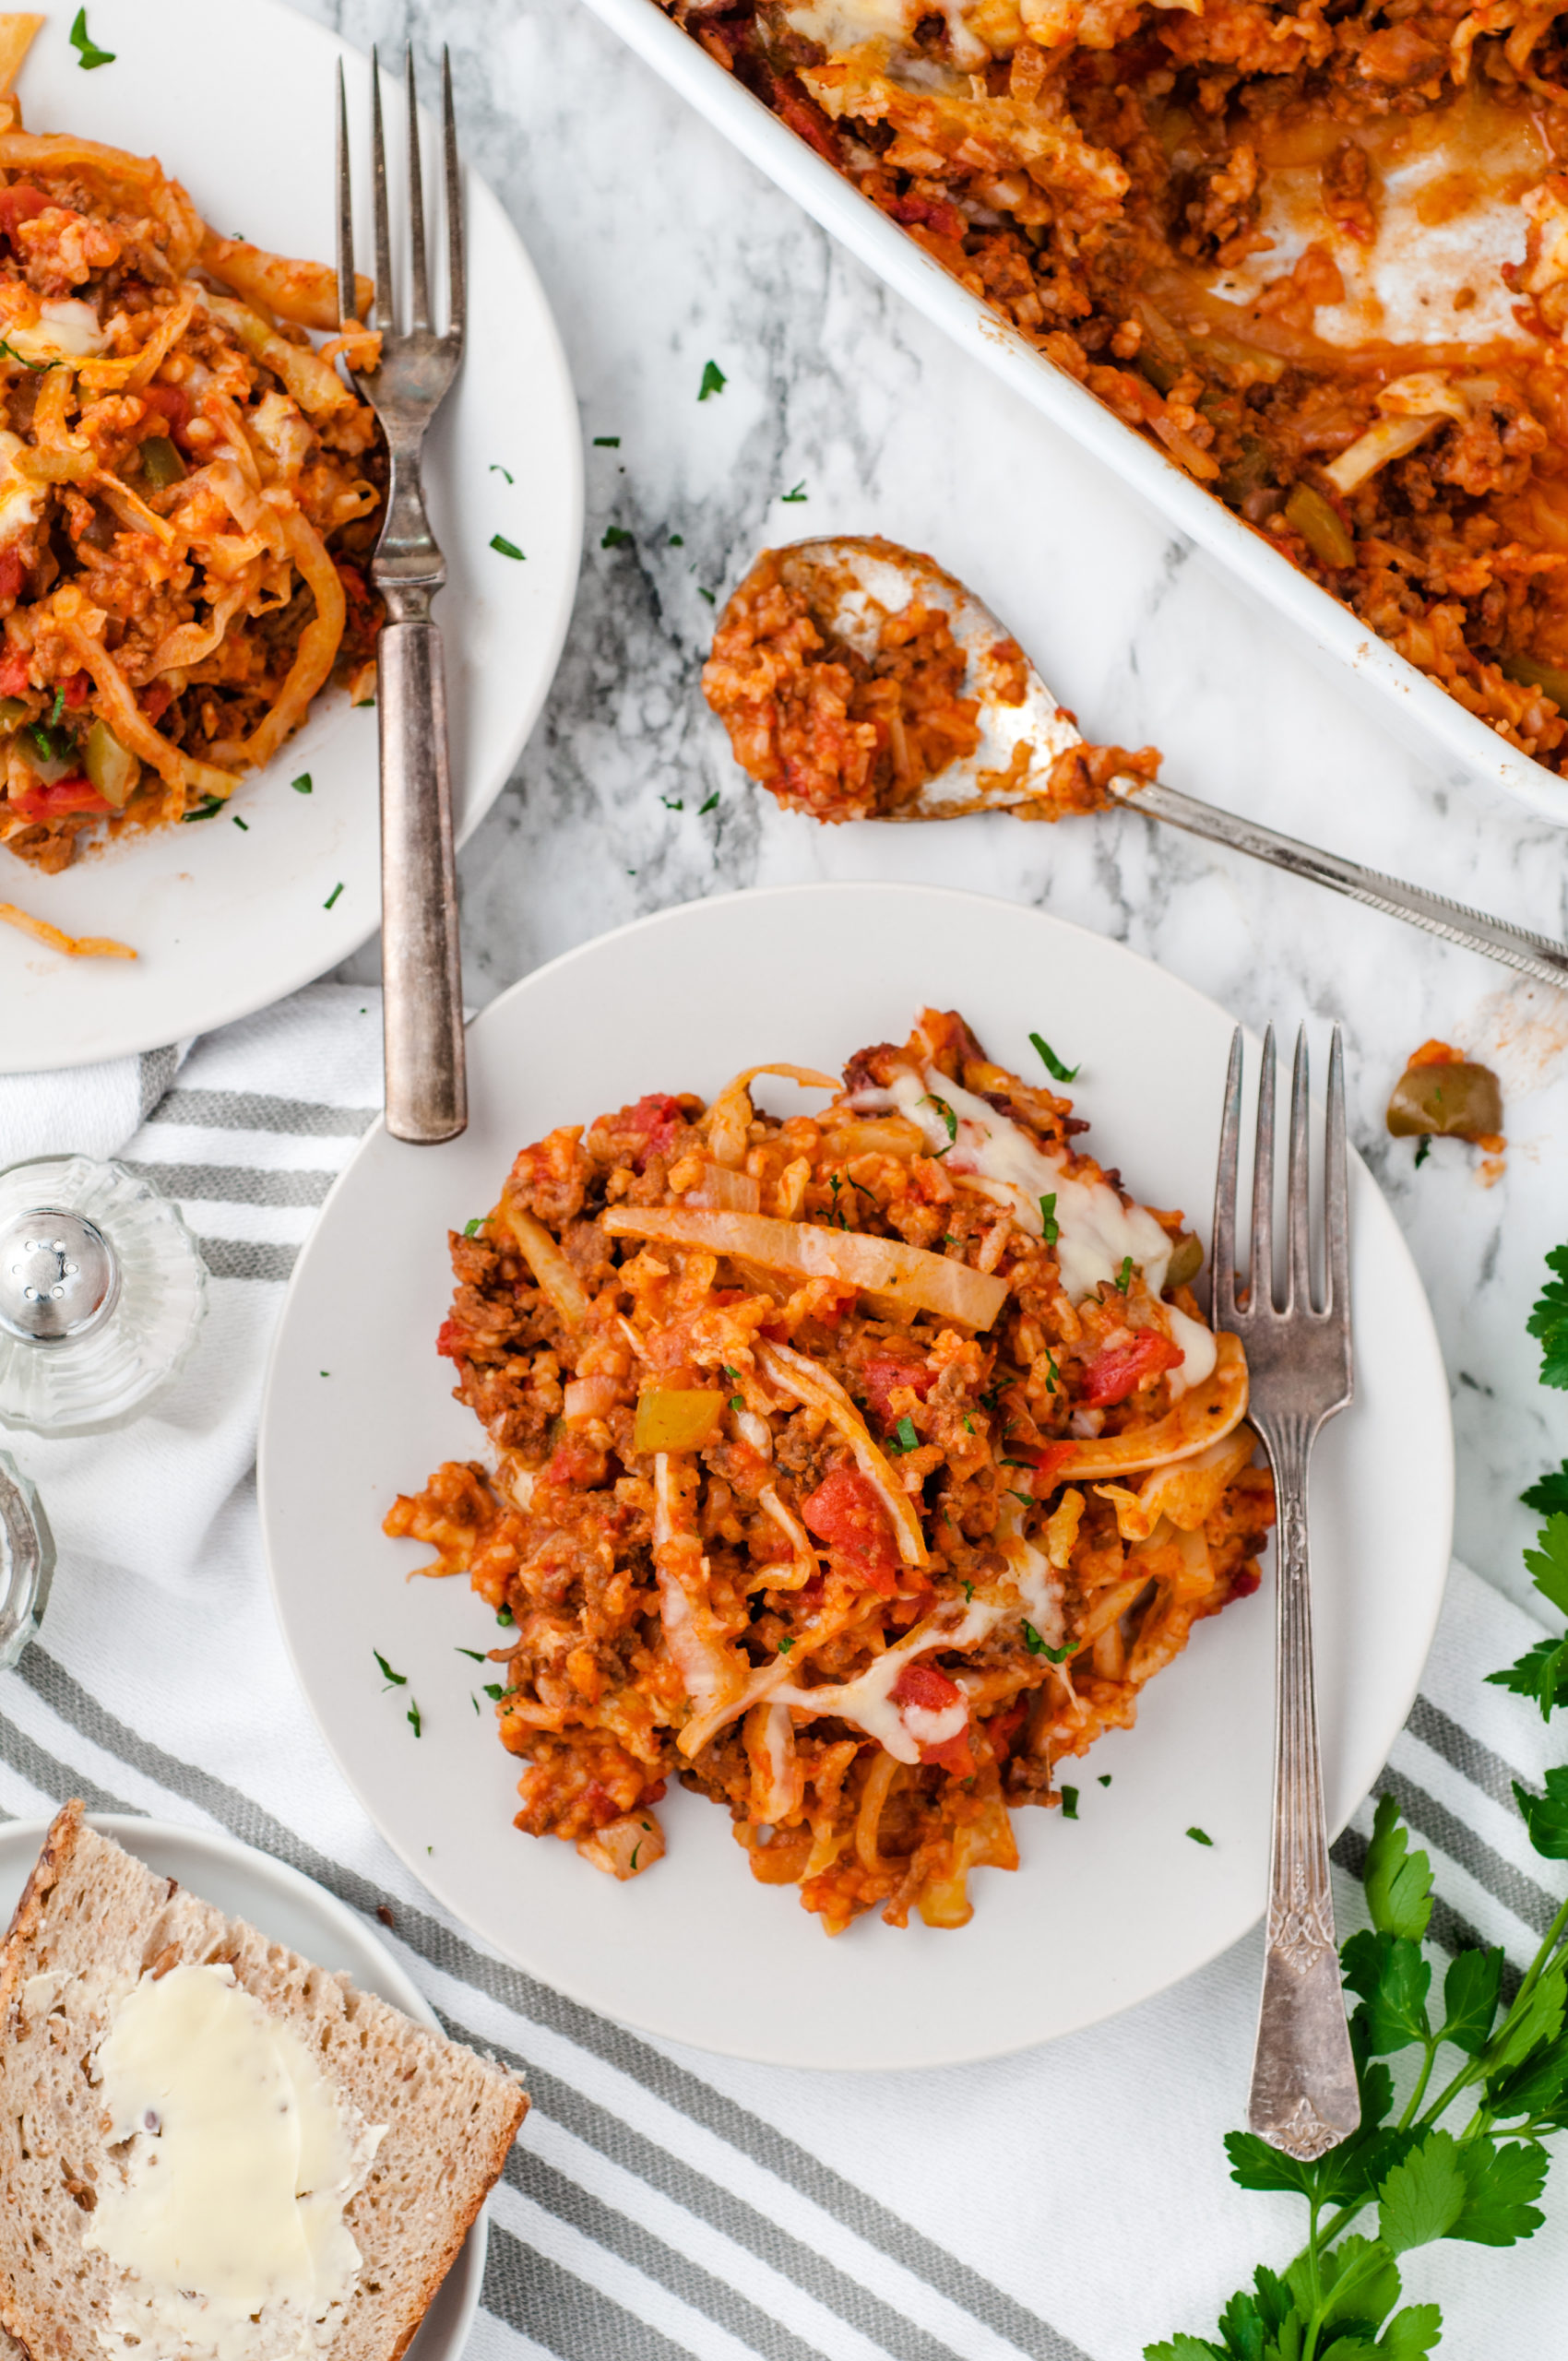 Cabbage Roll Casserole Recipe from Family Fresh Meals  #cabbage #cabbageroll #beef #groundbeef #casserole #lowcarb via @familyfresh